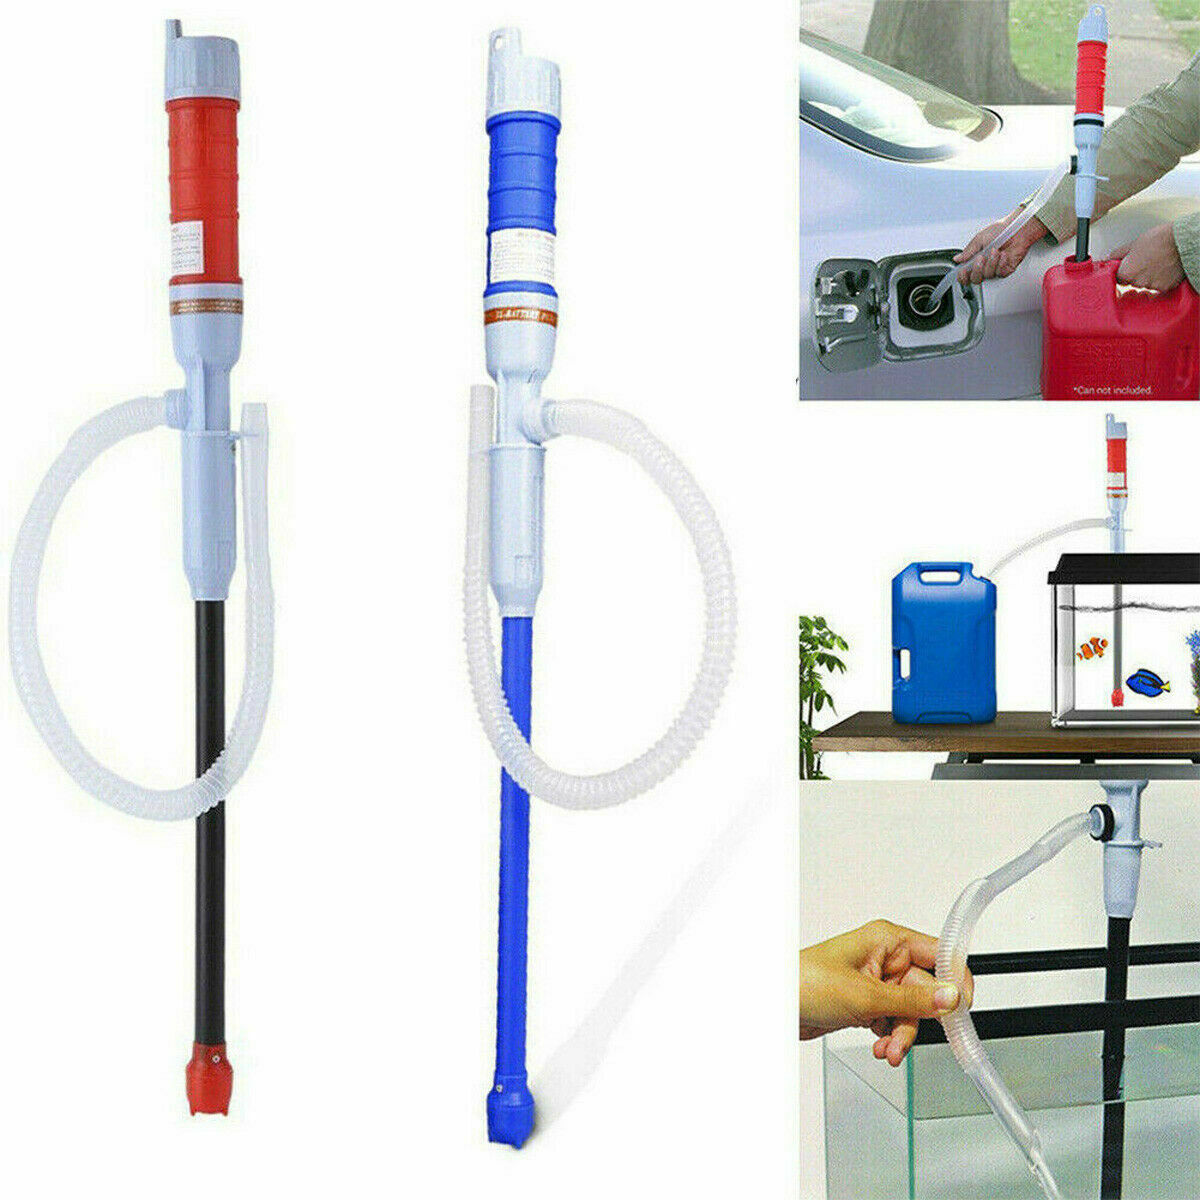 Fuel-Syphon-Pump Oil-Water-Battery Handheld Liquid Electric-Supply Transfer-Gas US Automatic